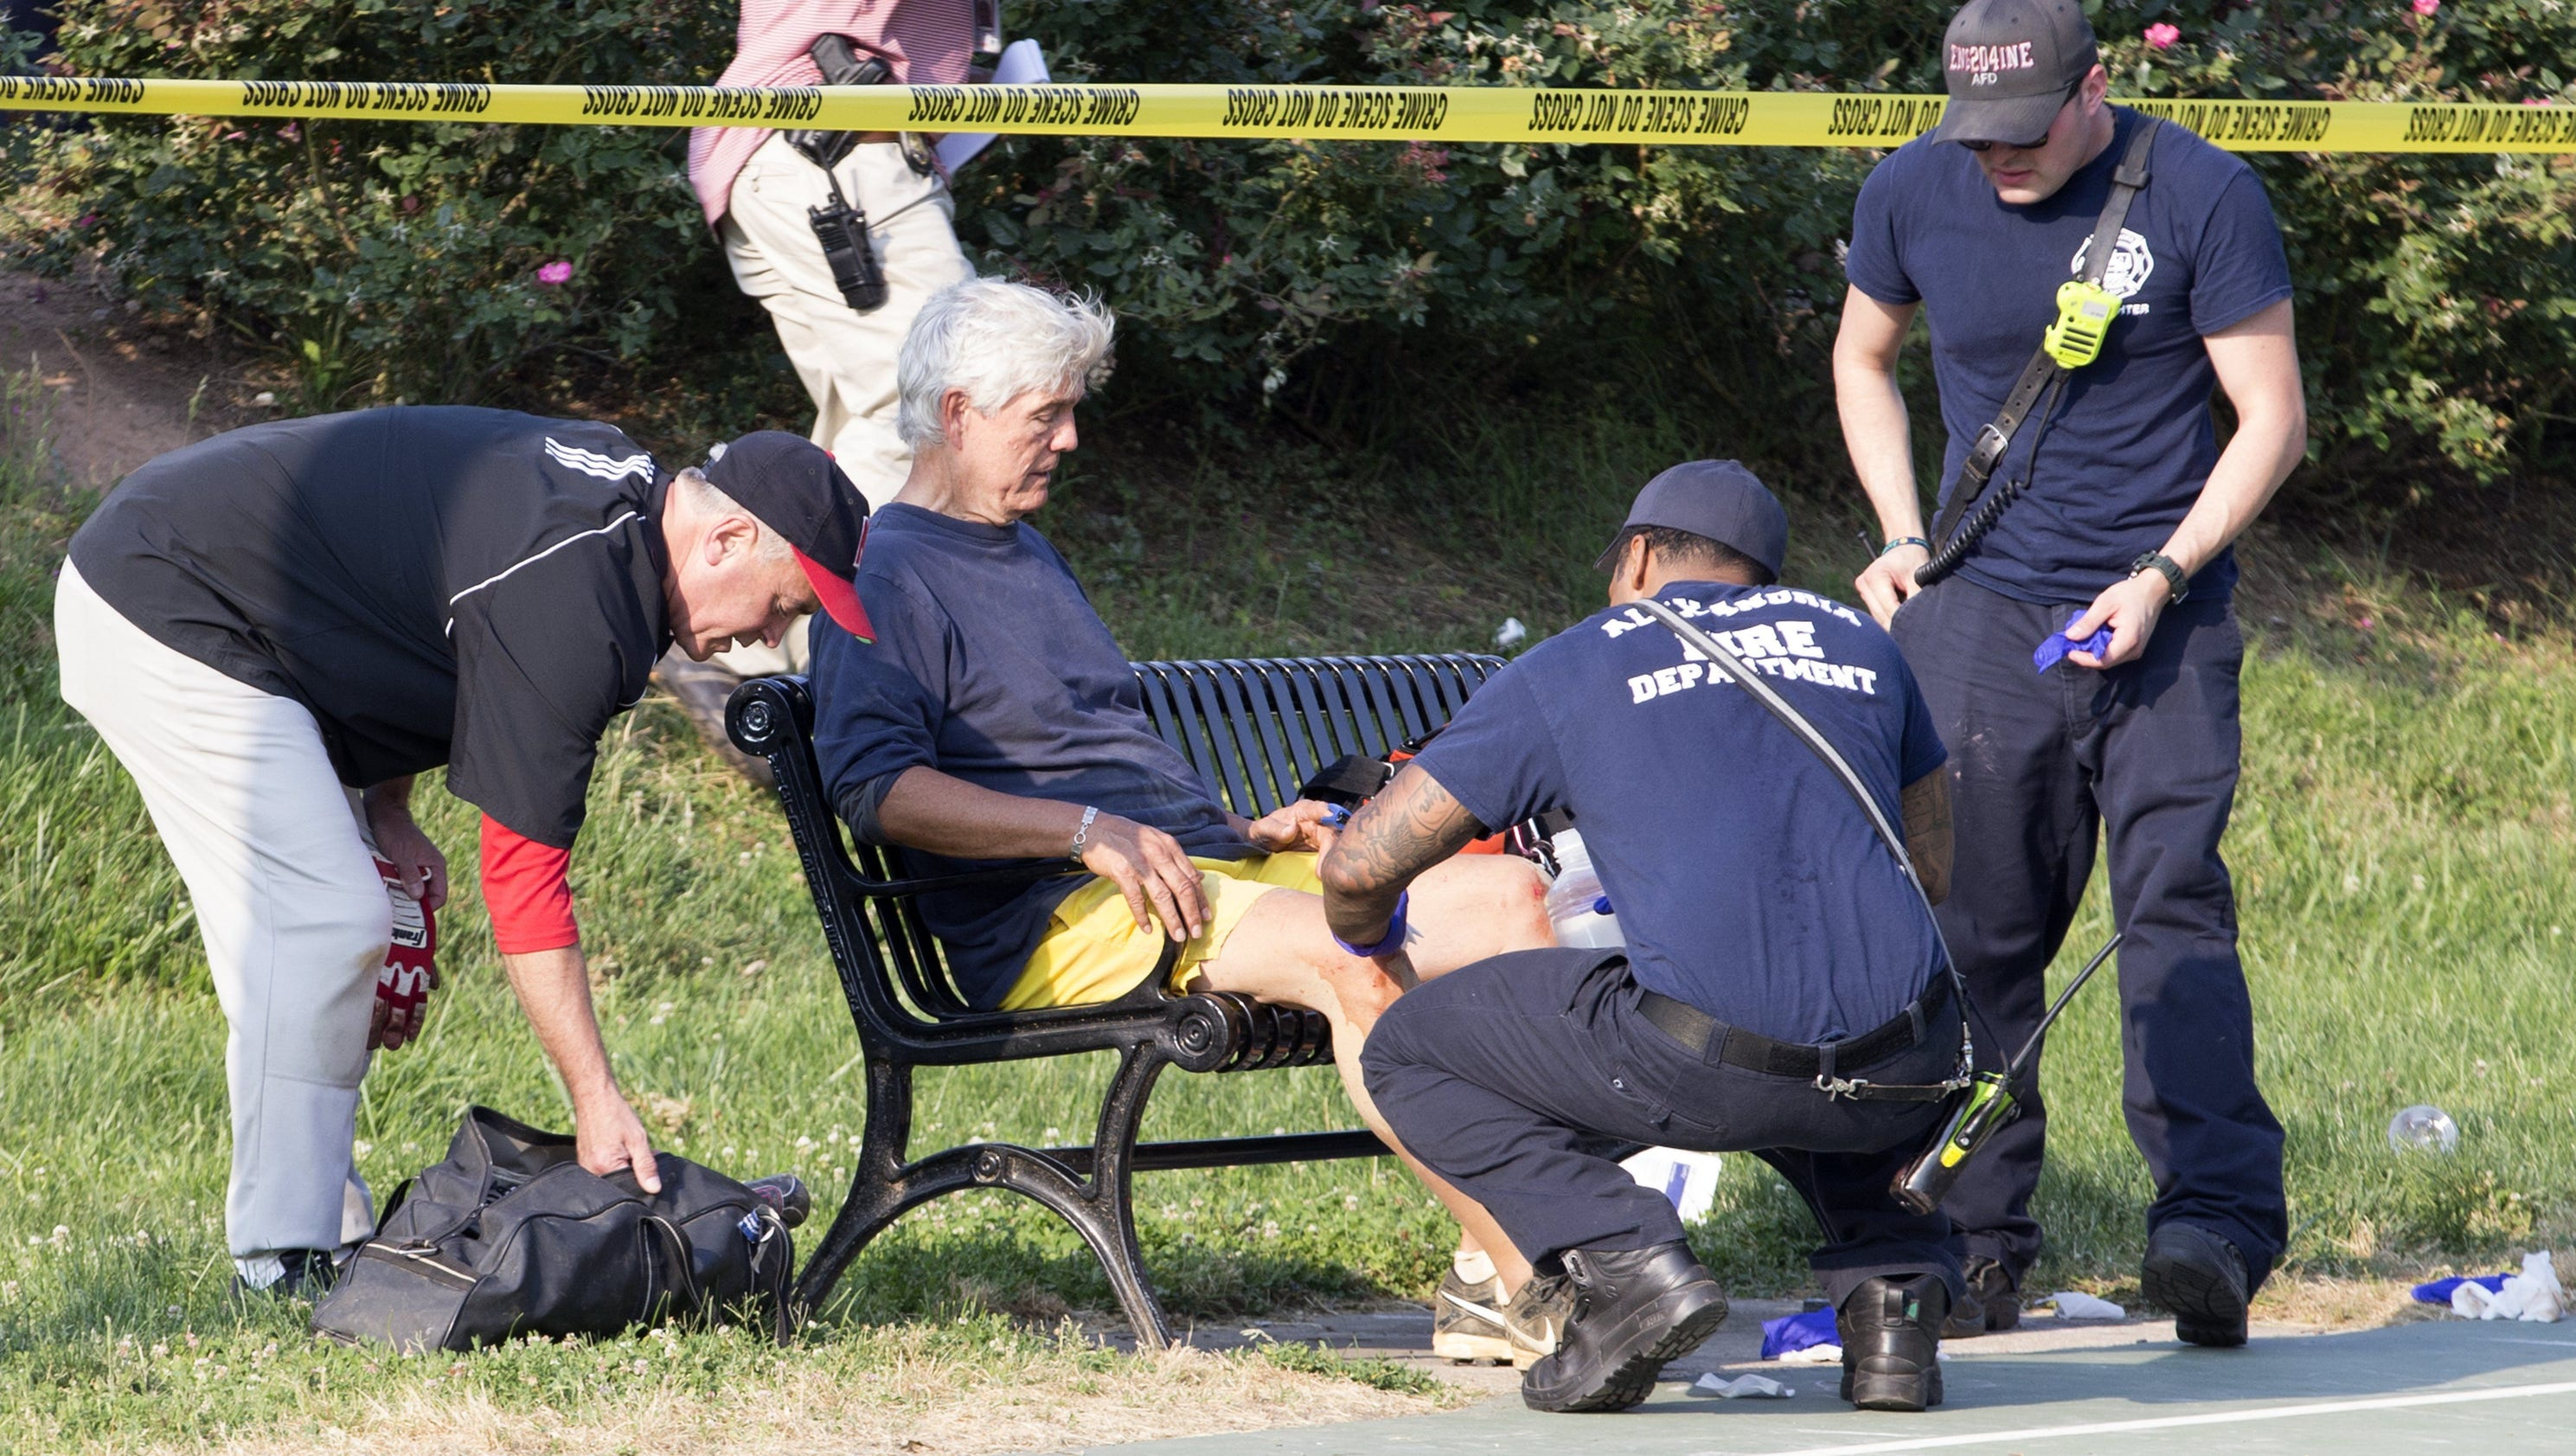 'I was doing what I could to not get killed:' Scene at Congressional baseball shooting